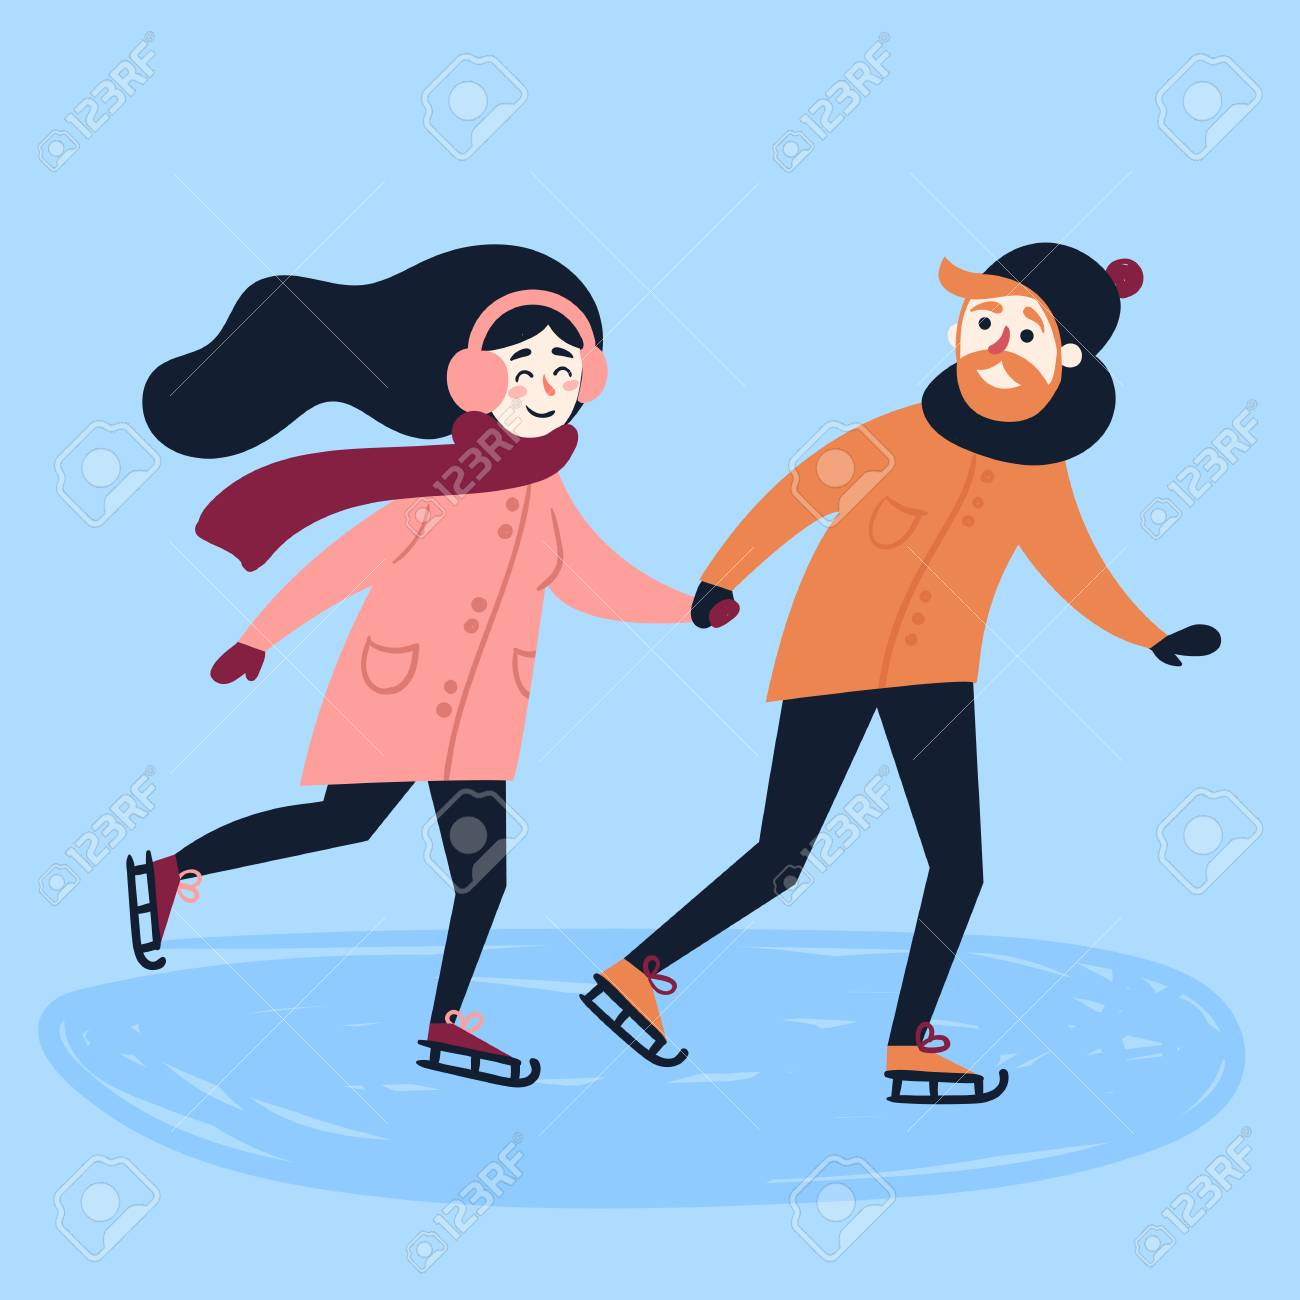 dancing-on-ice-dating-couples